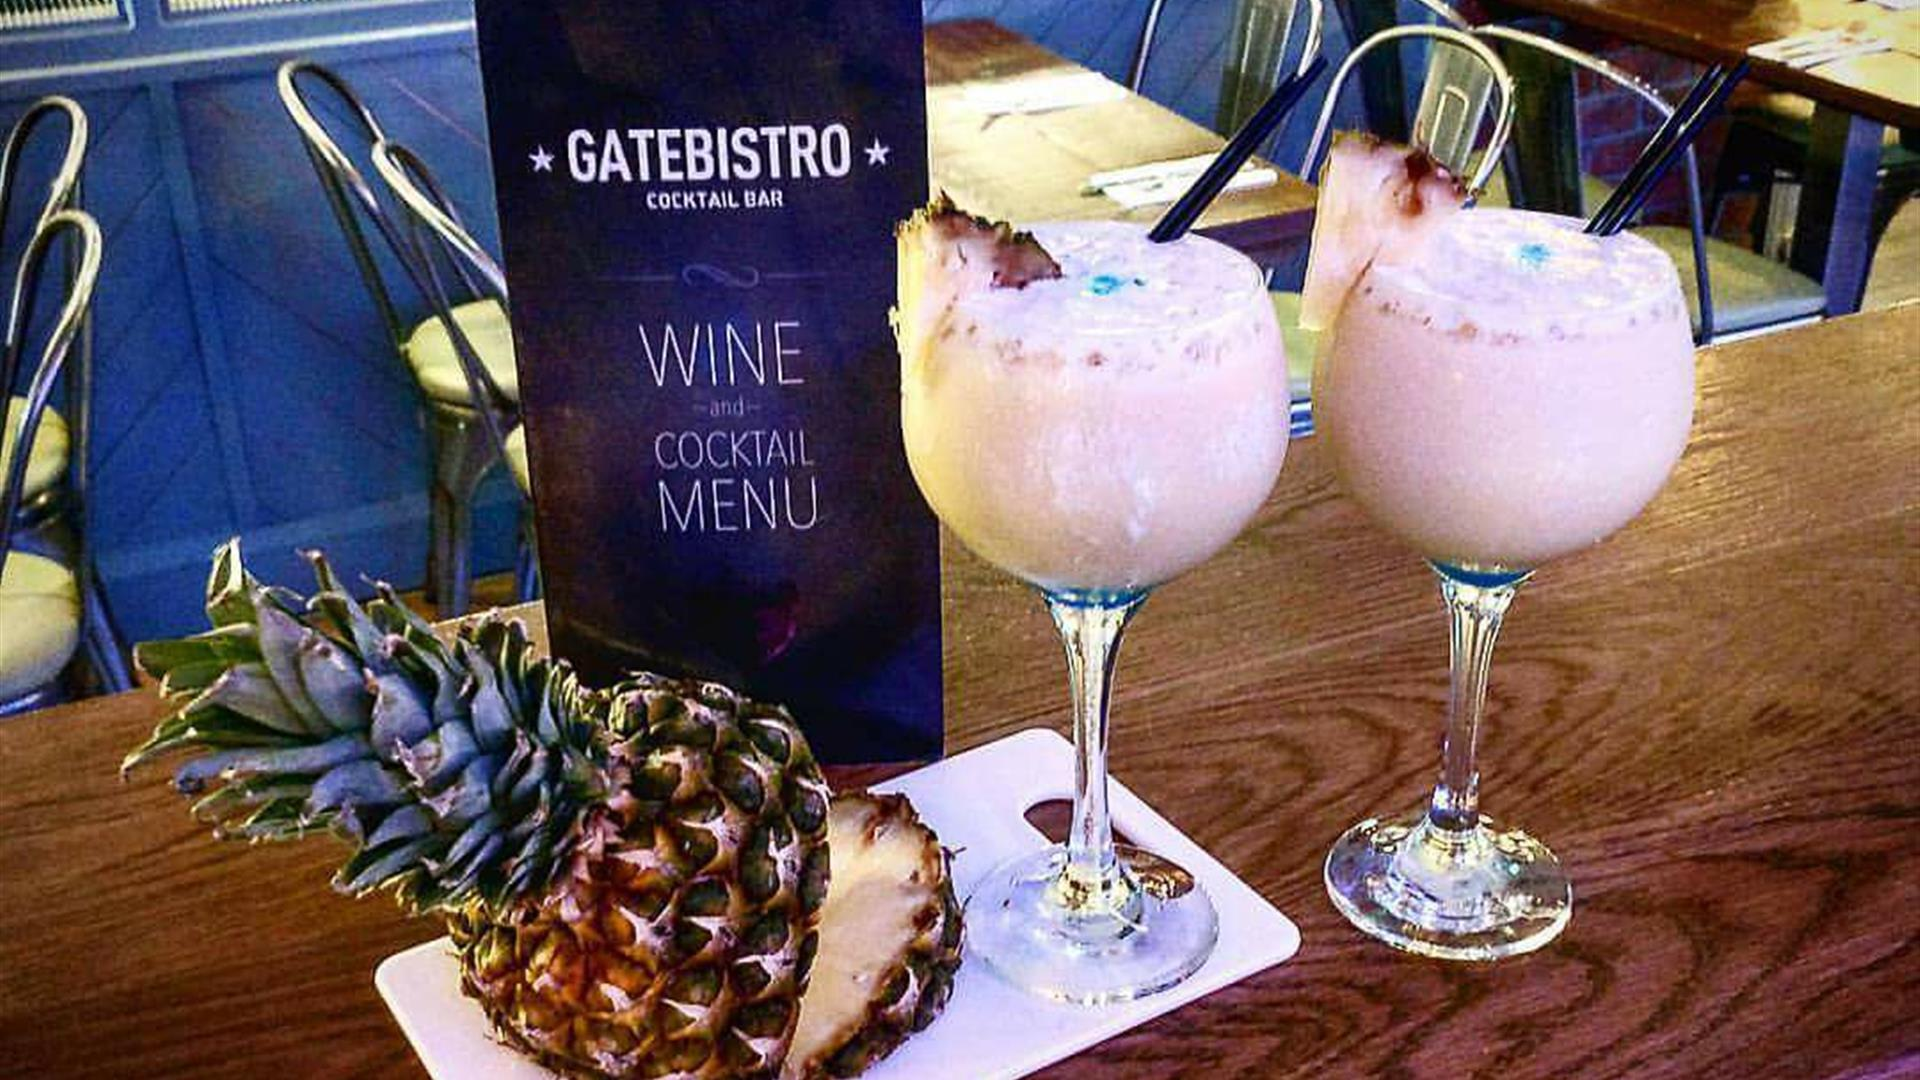 The Gate Bistro and Cocktail Bar